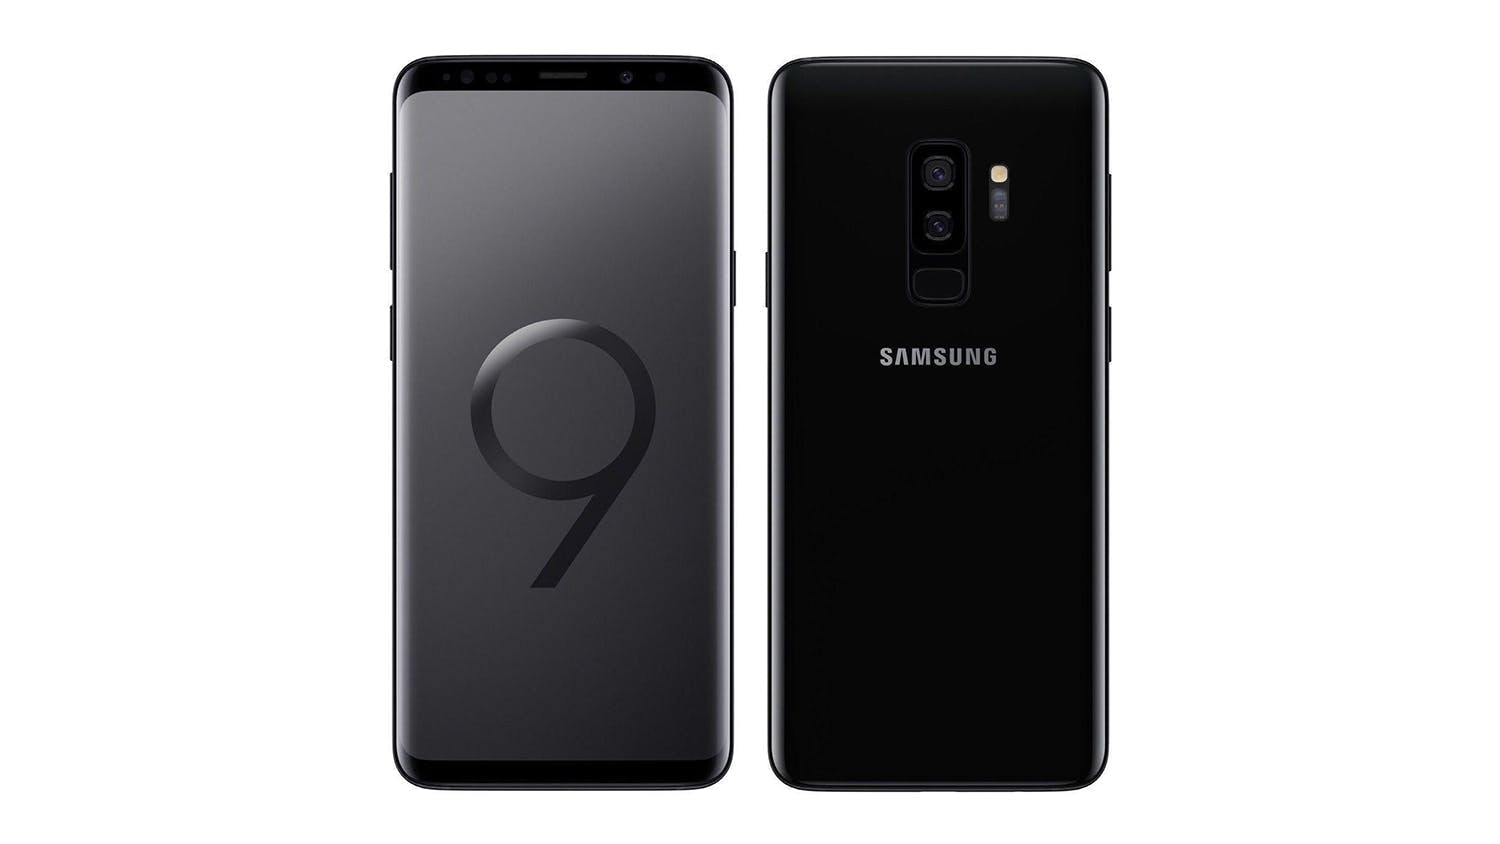 2degrees Samsung Galaxy S9+ Midnight Black Smartphone - 256GB